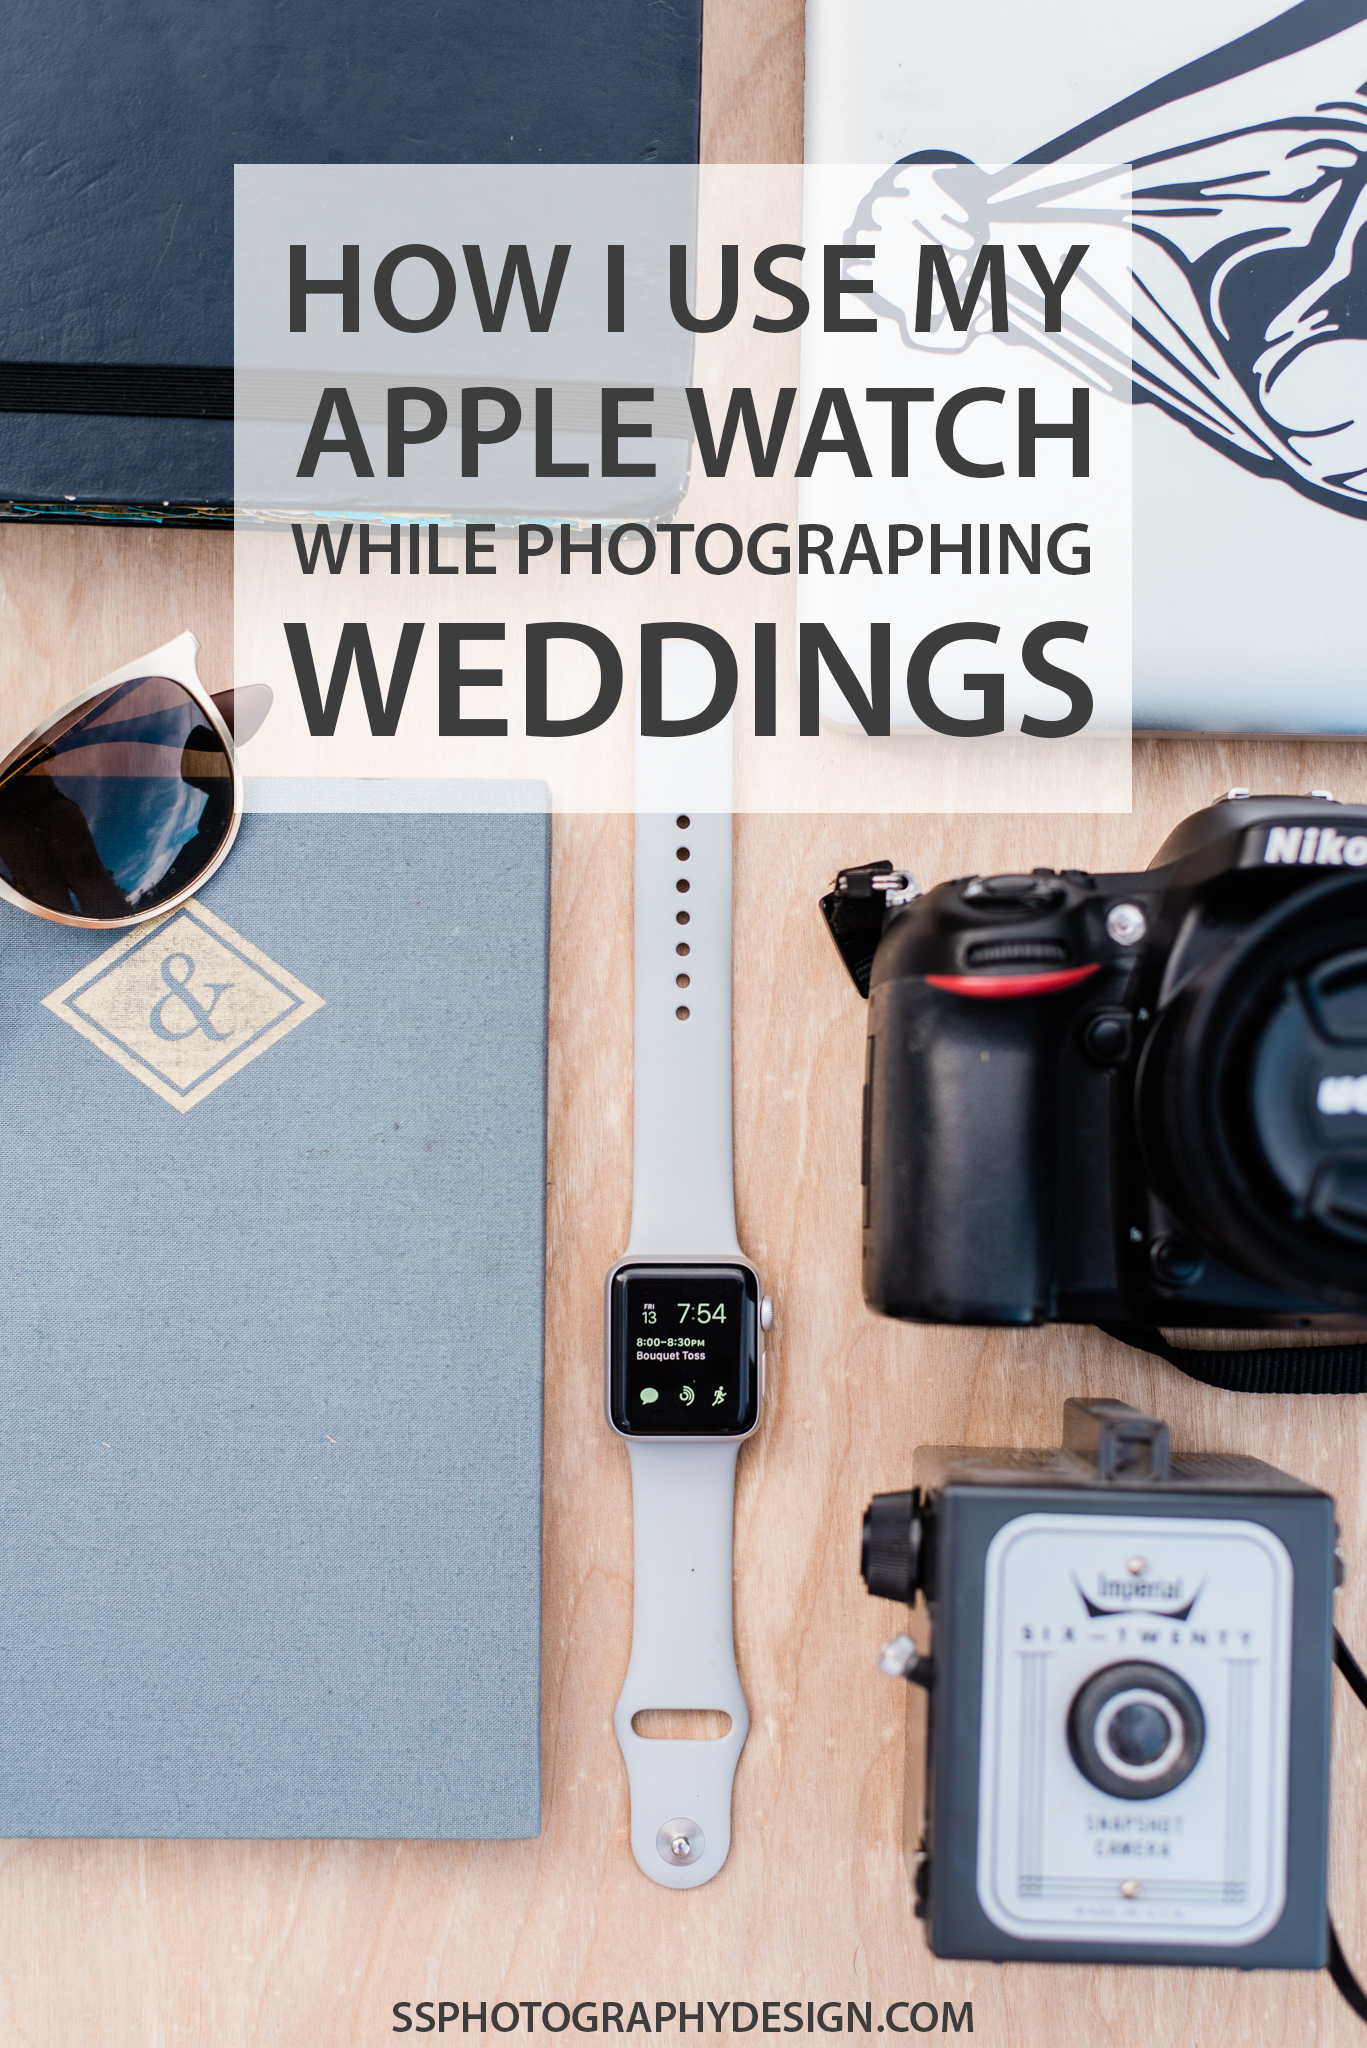 Boise Wedding Photographer // Idaho engagement photographer // Apple Products // Apple Watch Photography // Apple Watch Wedding Photographer // Top Reasons to get an Apple Watch // Photographer's Opinion on Apple Watch // How to Use Apple Watch As a Photographer // Wedding Photographer Checklist // Technology for Photographers // Apps for Photographers // Ideas for Apple Watch // Apple Watch Examples // Apple Watch Flatlay // boise couples photographer // SS Photography & Design // Sadie Shirts